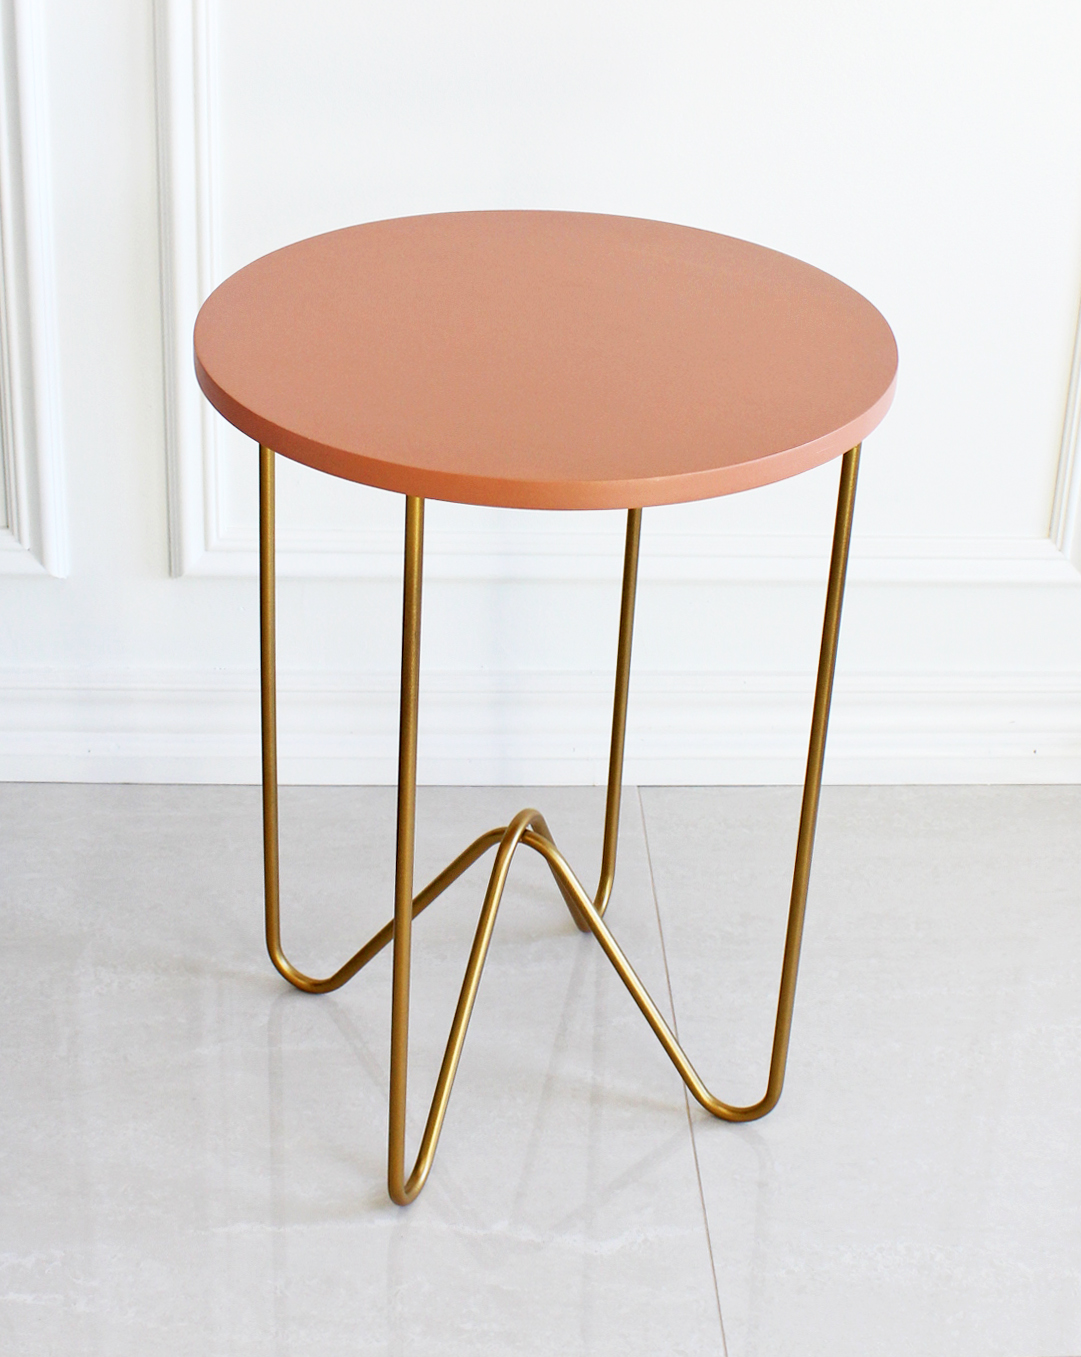 dolce vita style marble tulip side table nate berkus target round gold peach accent having second thoughts about the colored tabletop thinking sending back any takers was sold out